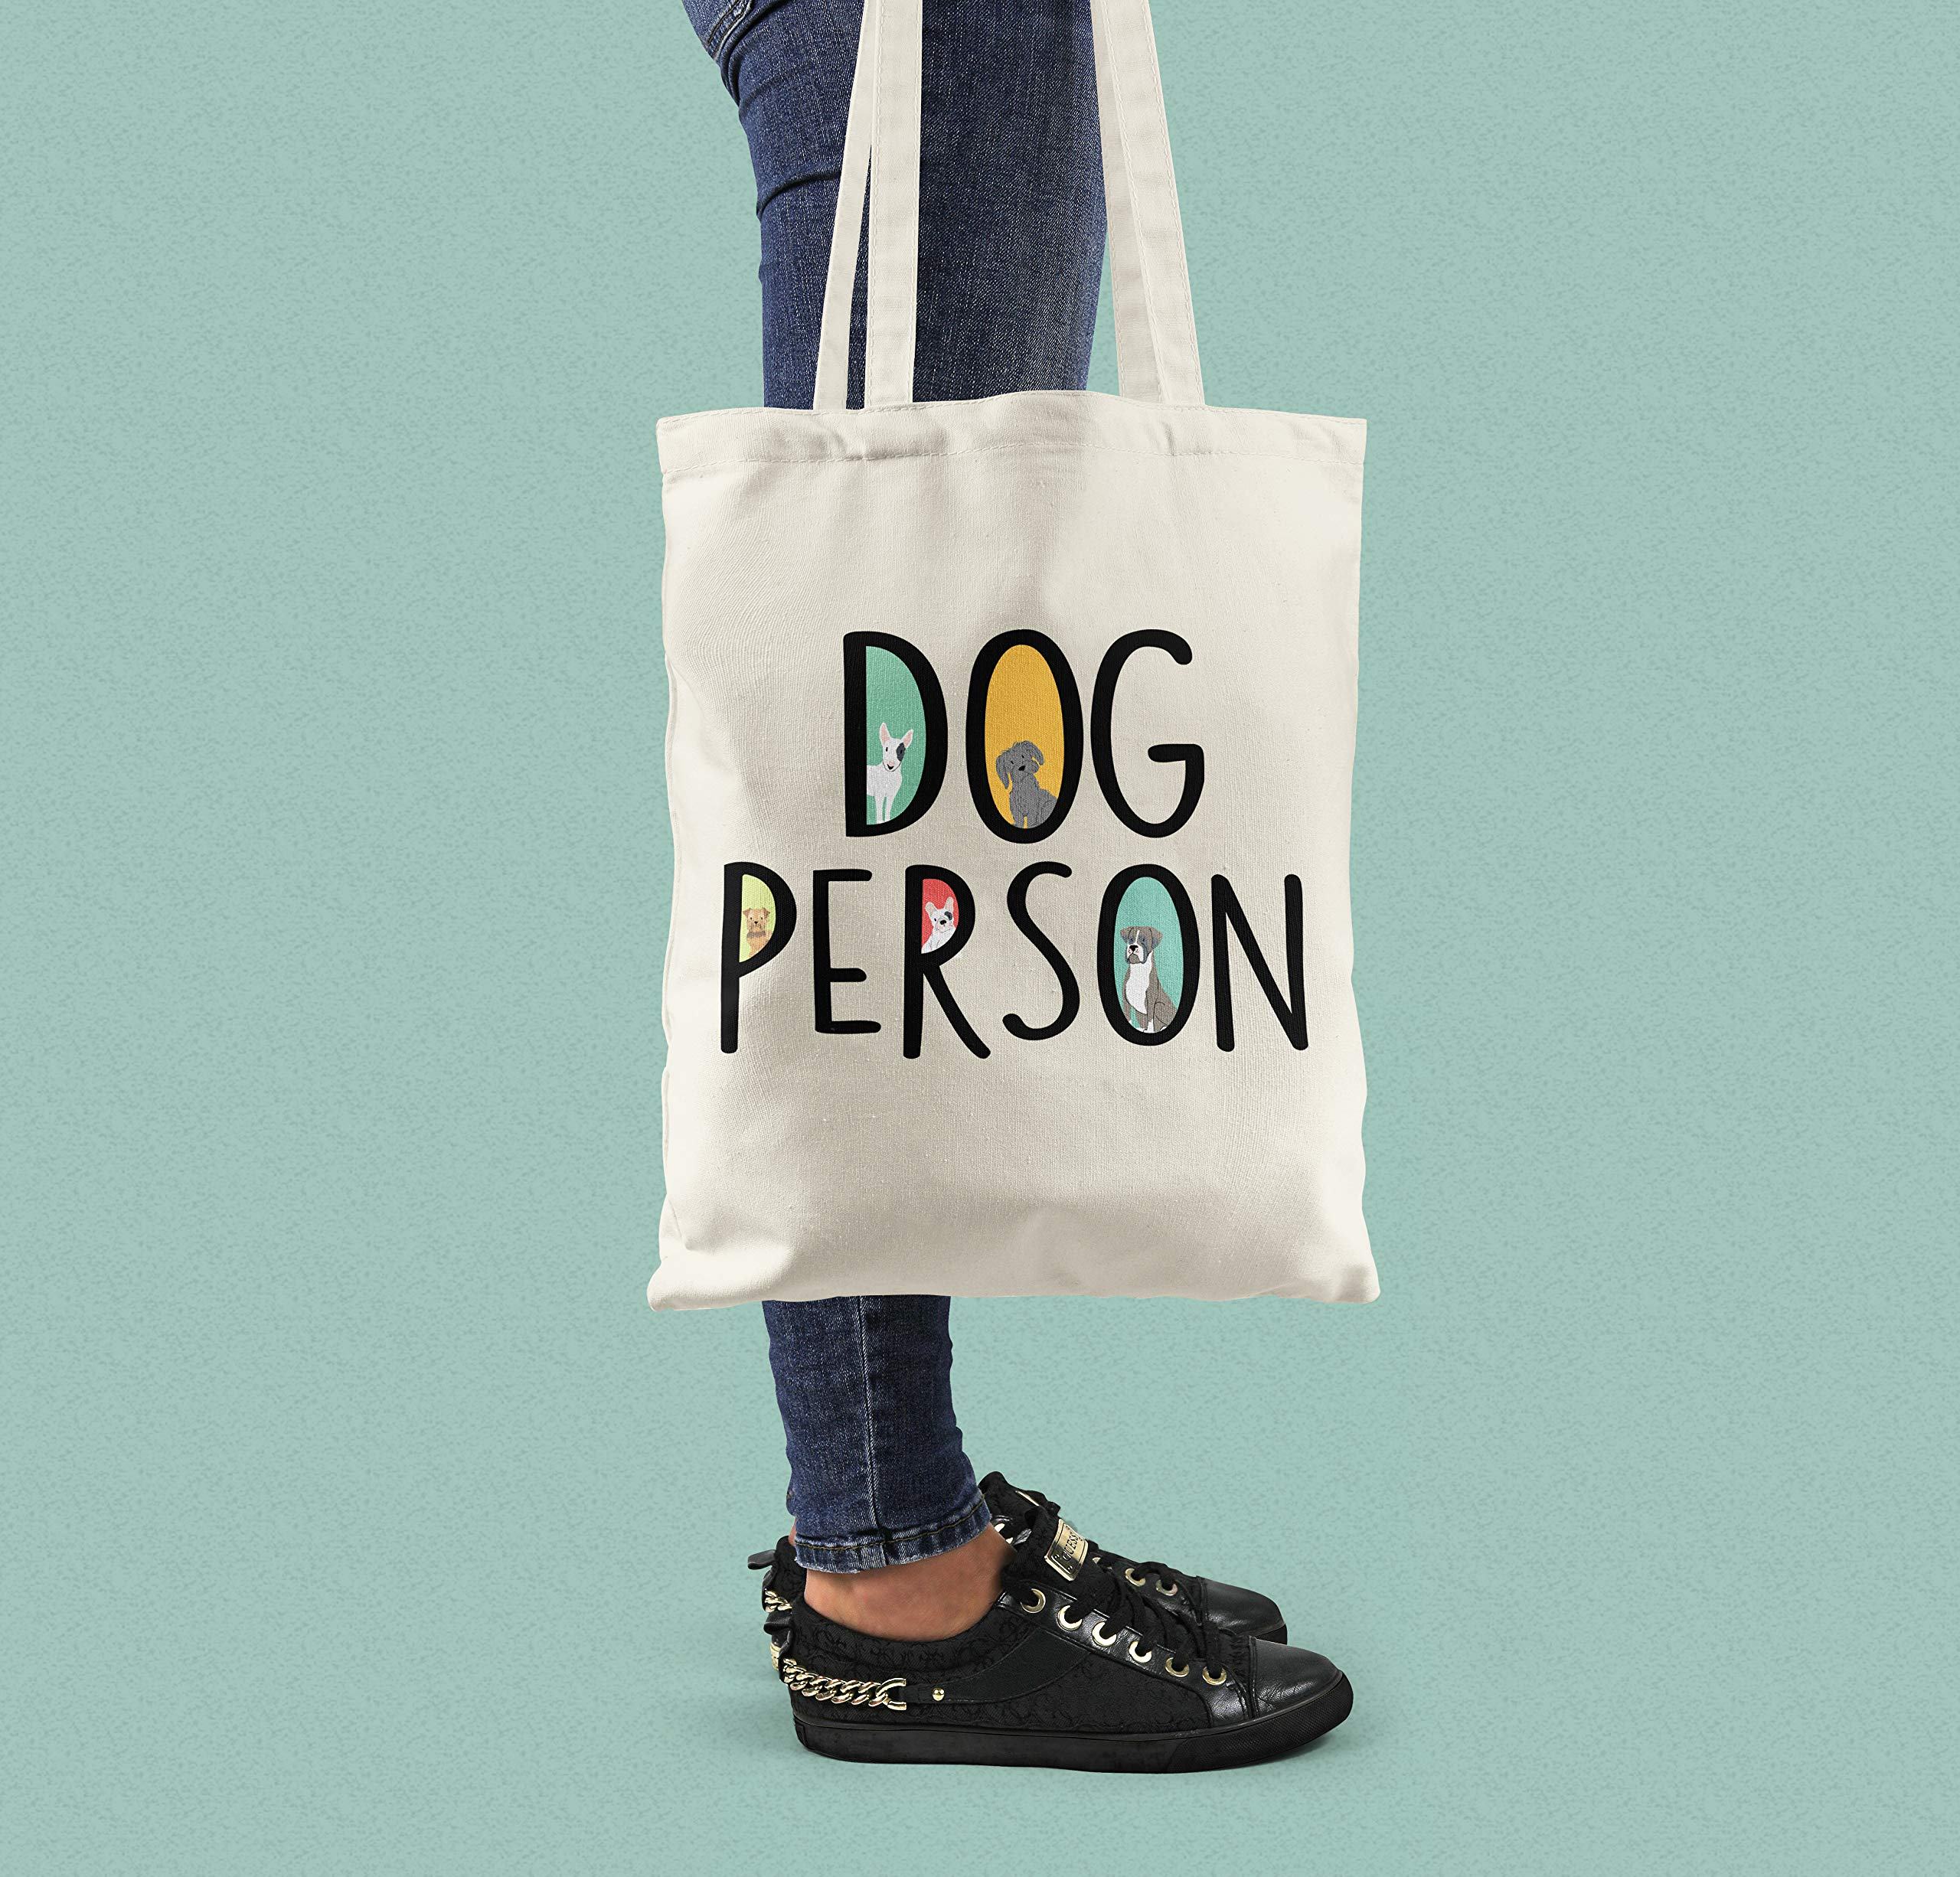 Dog Person Cotton Shopping Tote Bag - handmade-bags